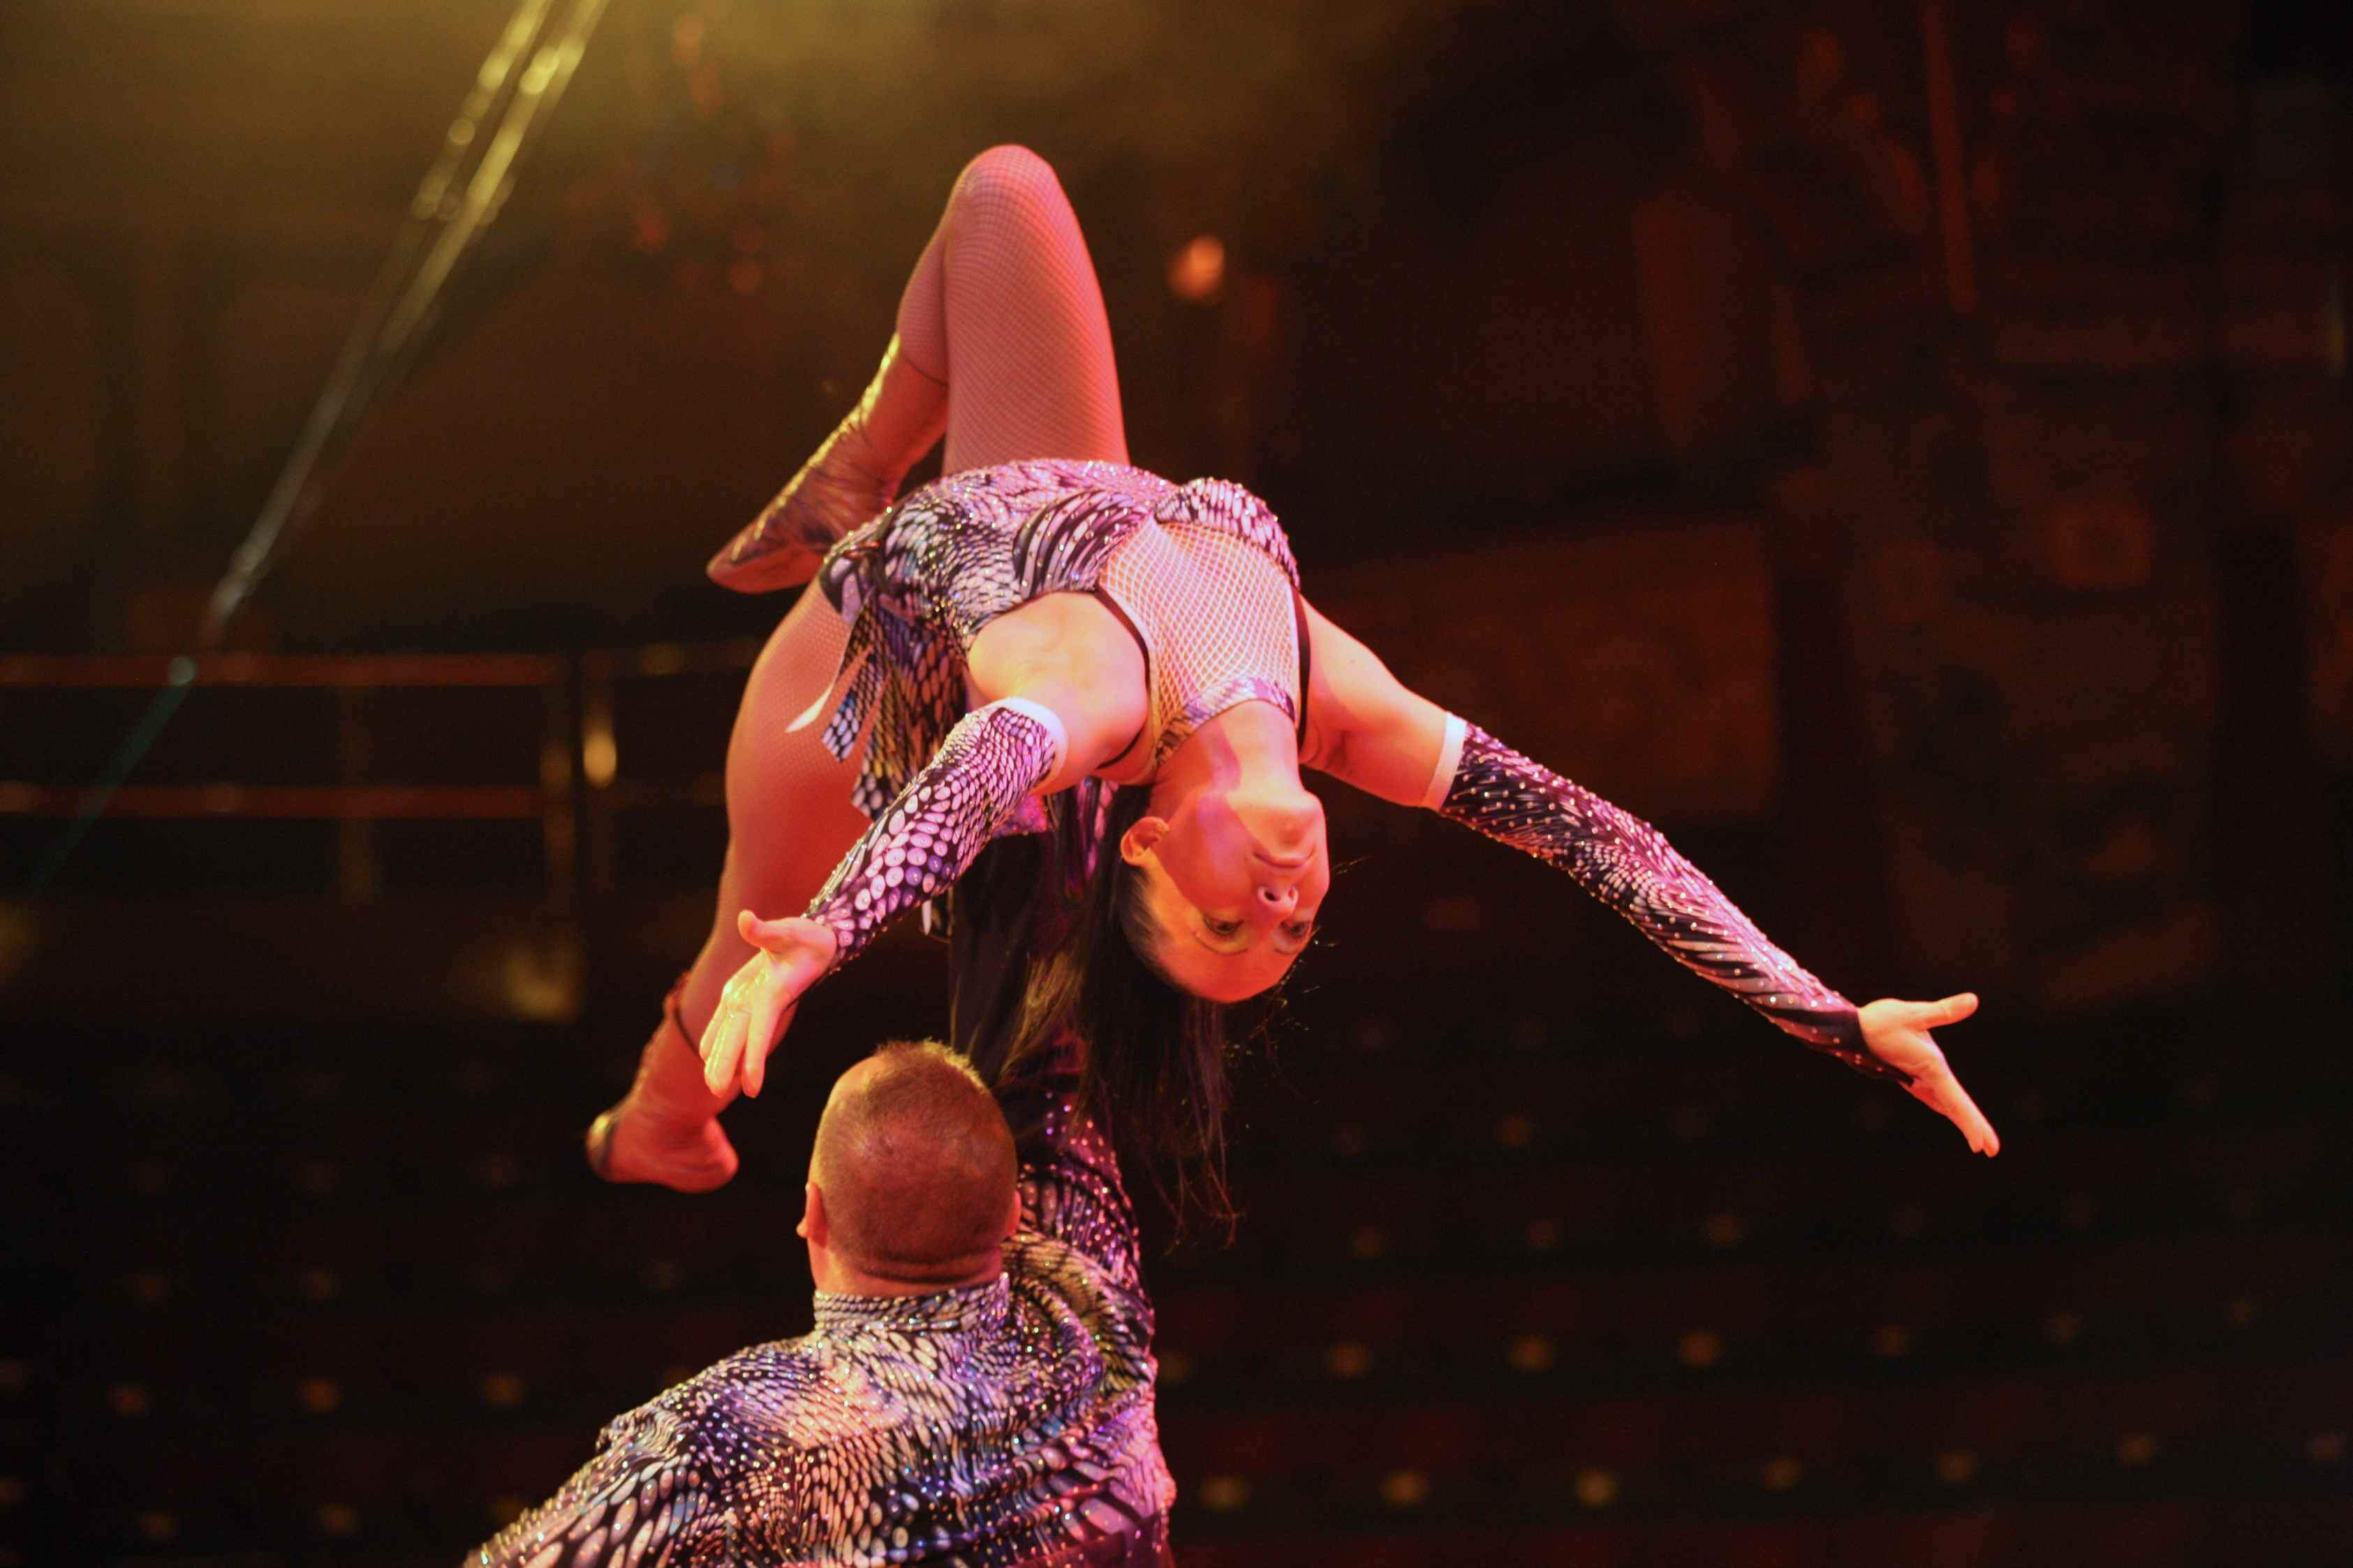 performers at the blackpool tower circus